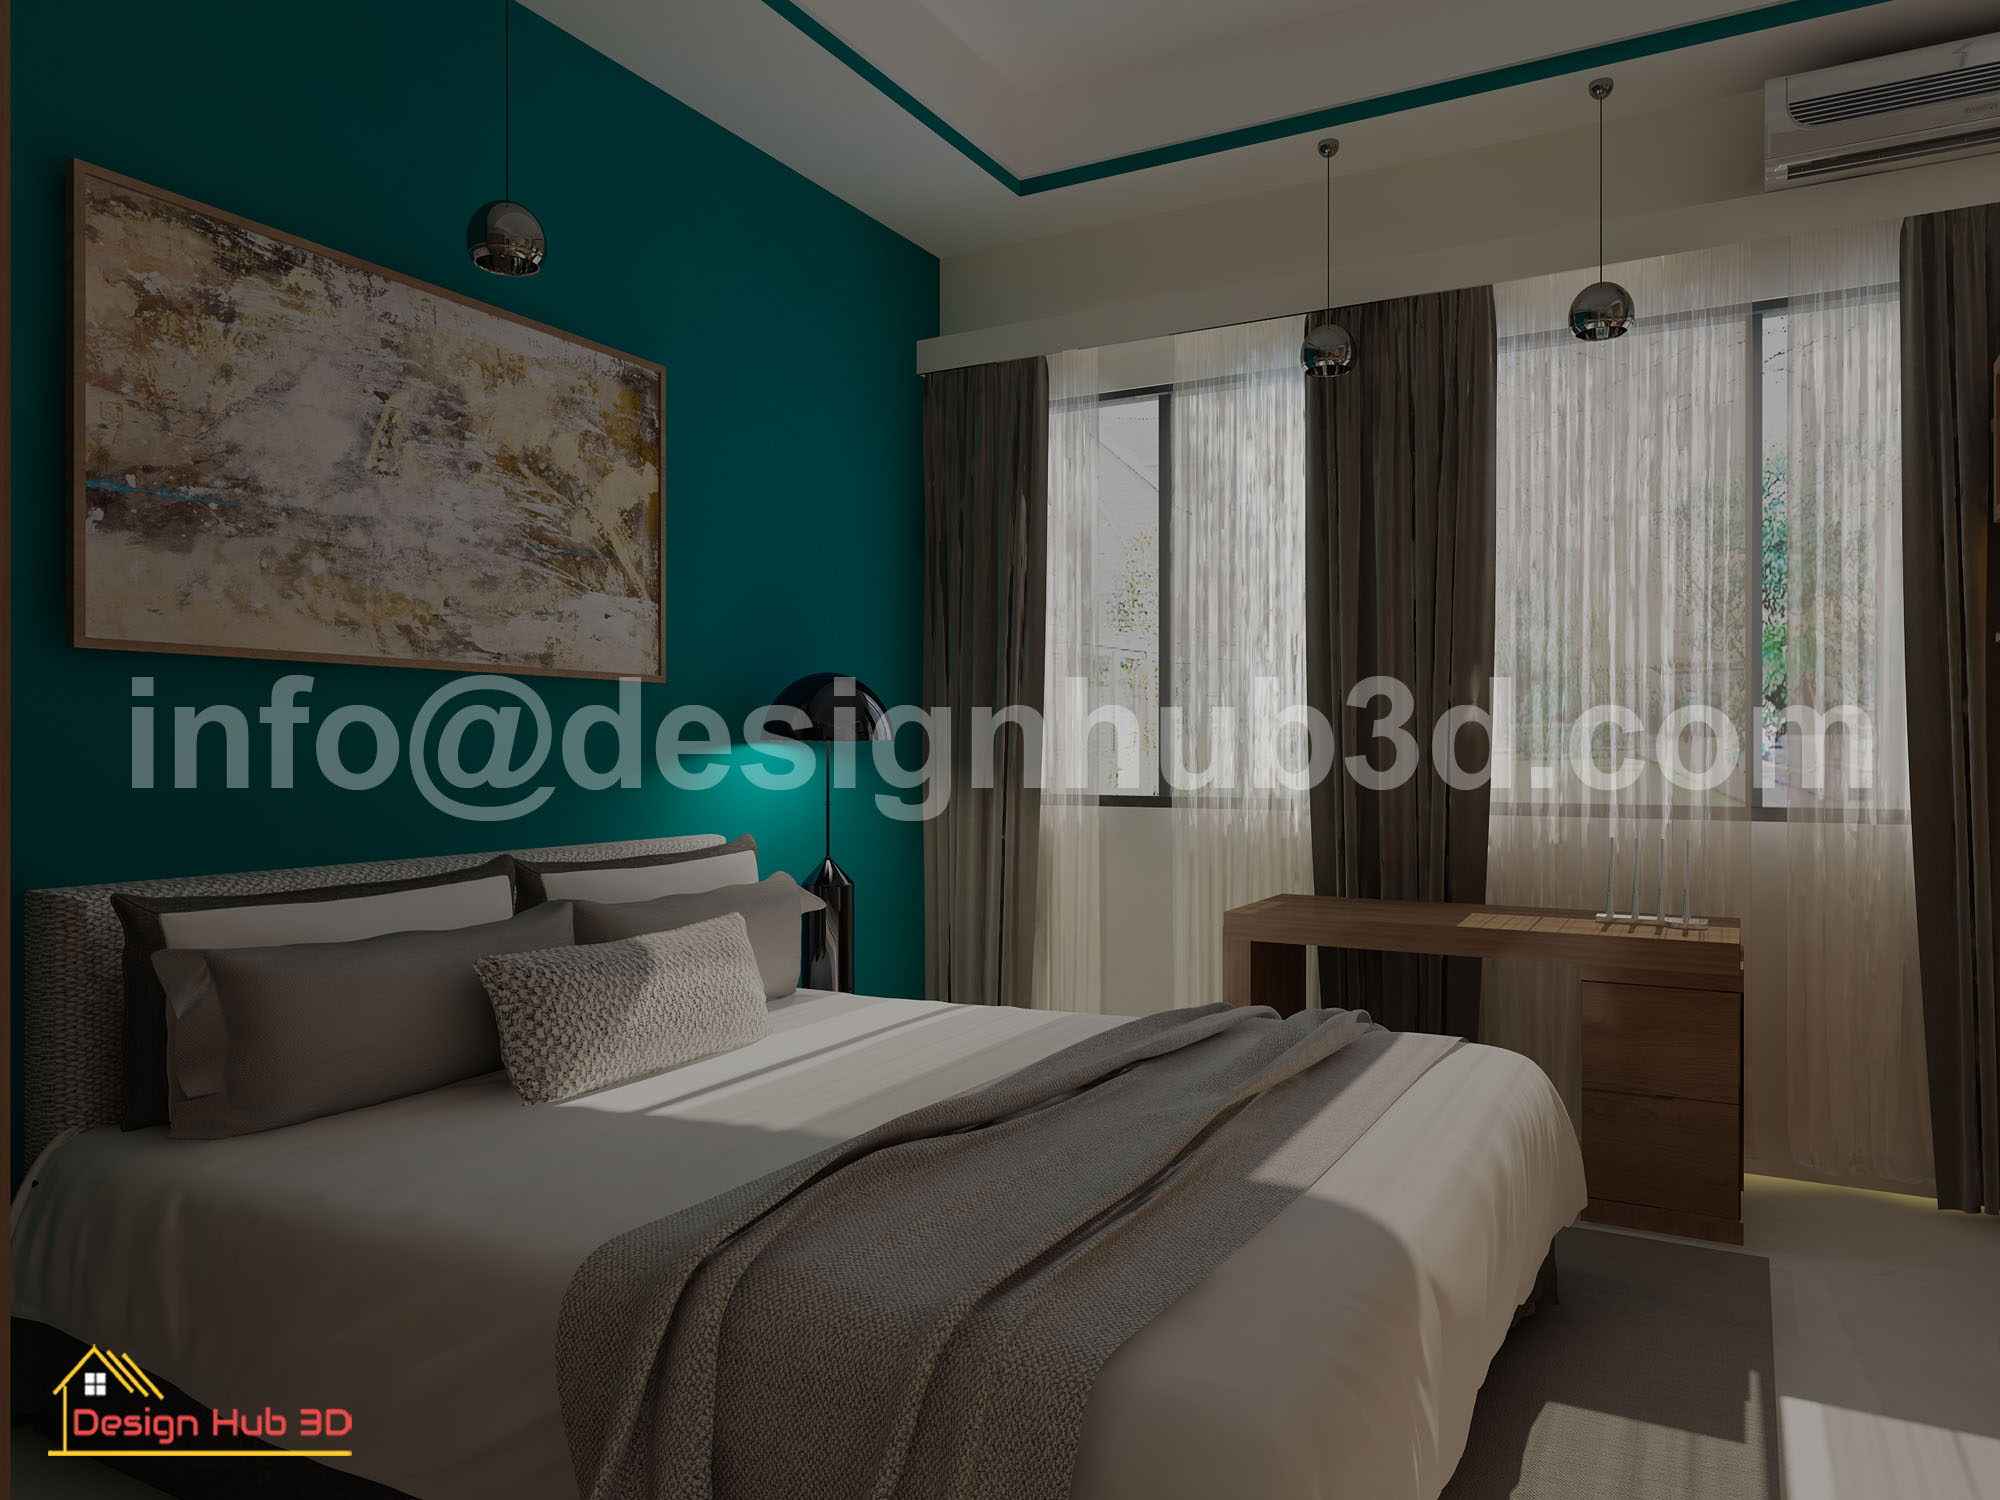 Designhub3d-home decor, master bed, interior design